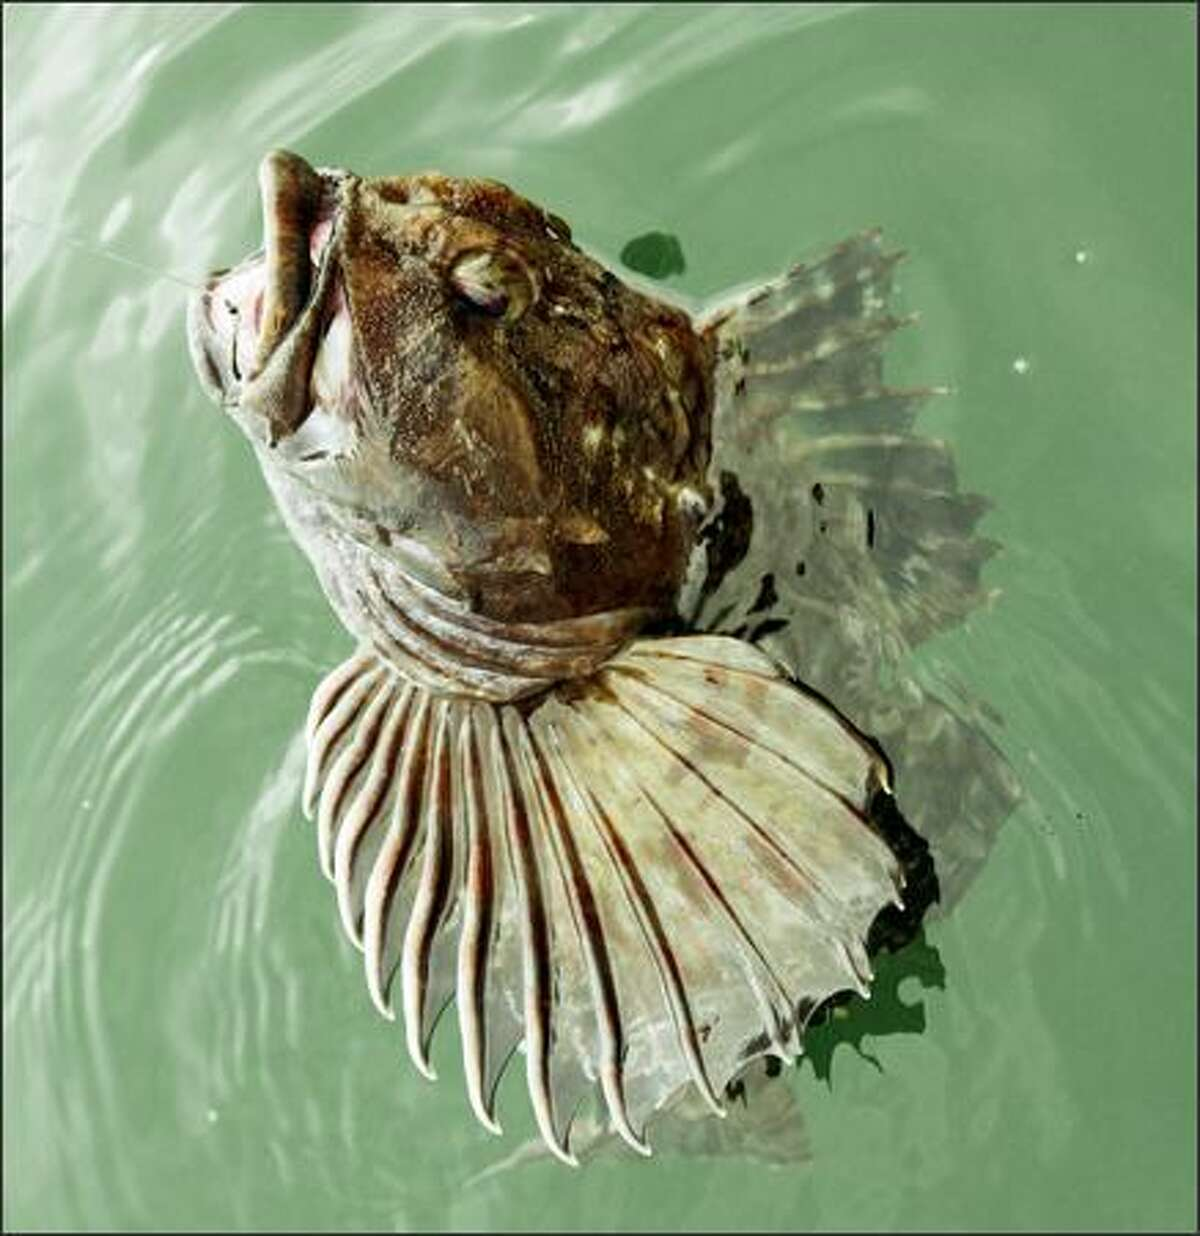 The lingcod's wide mouth and sharp teeth -- not to mention its strength -- make it a formidable predator. Though lingcod stocks have rebounded in inland waters, they're even more plentiful off the Washington Coast.